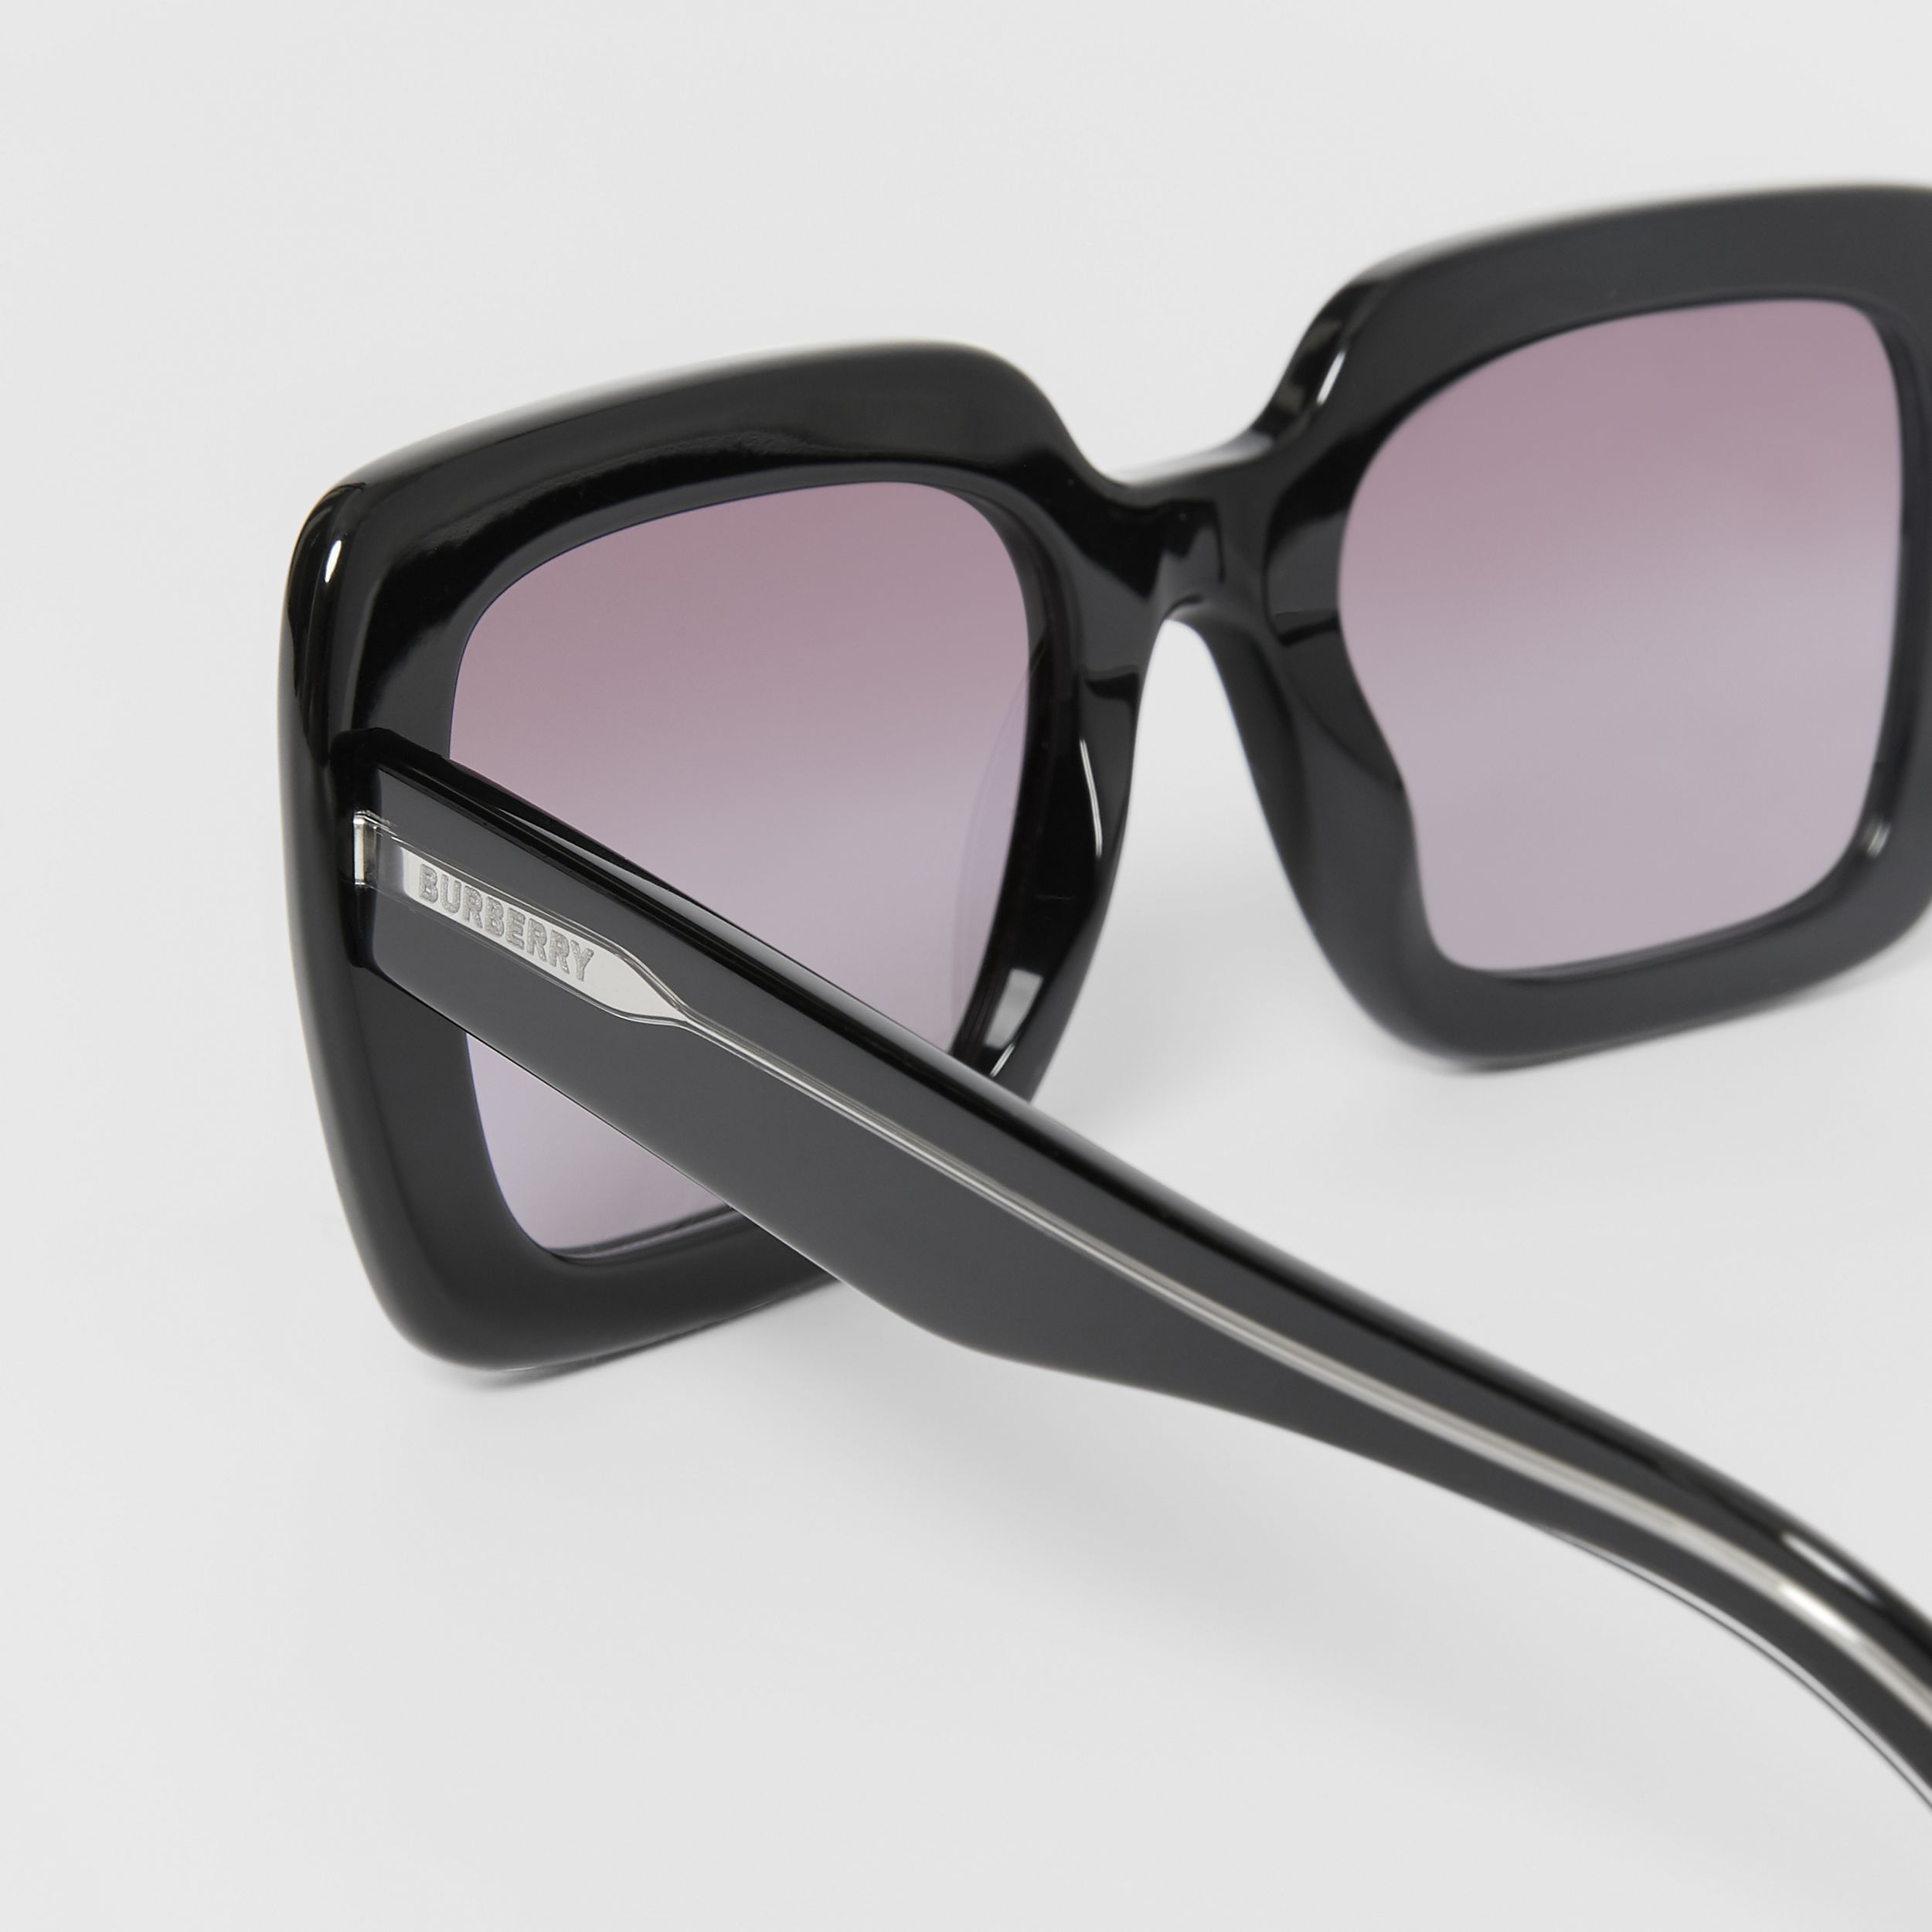 Oversized Square Frame Sunglasses in Black - Women | Burberry Singapore - 2